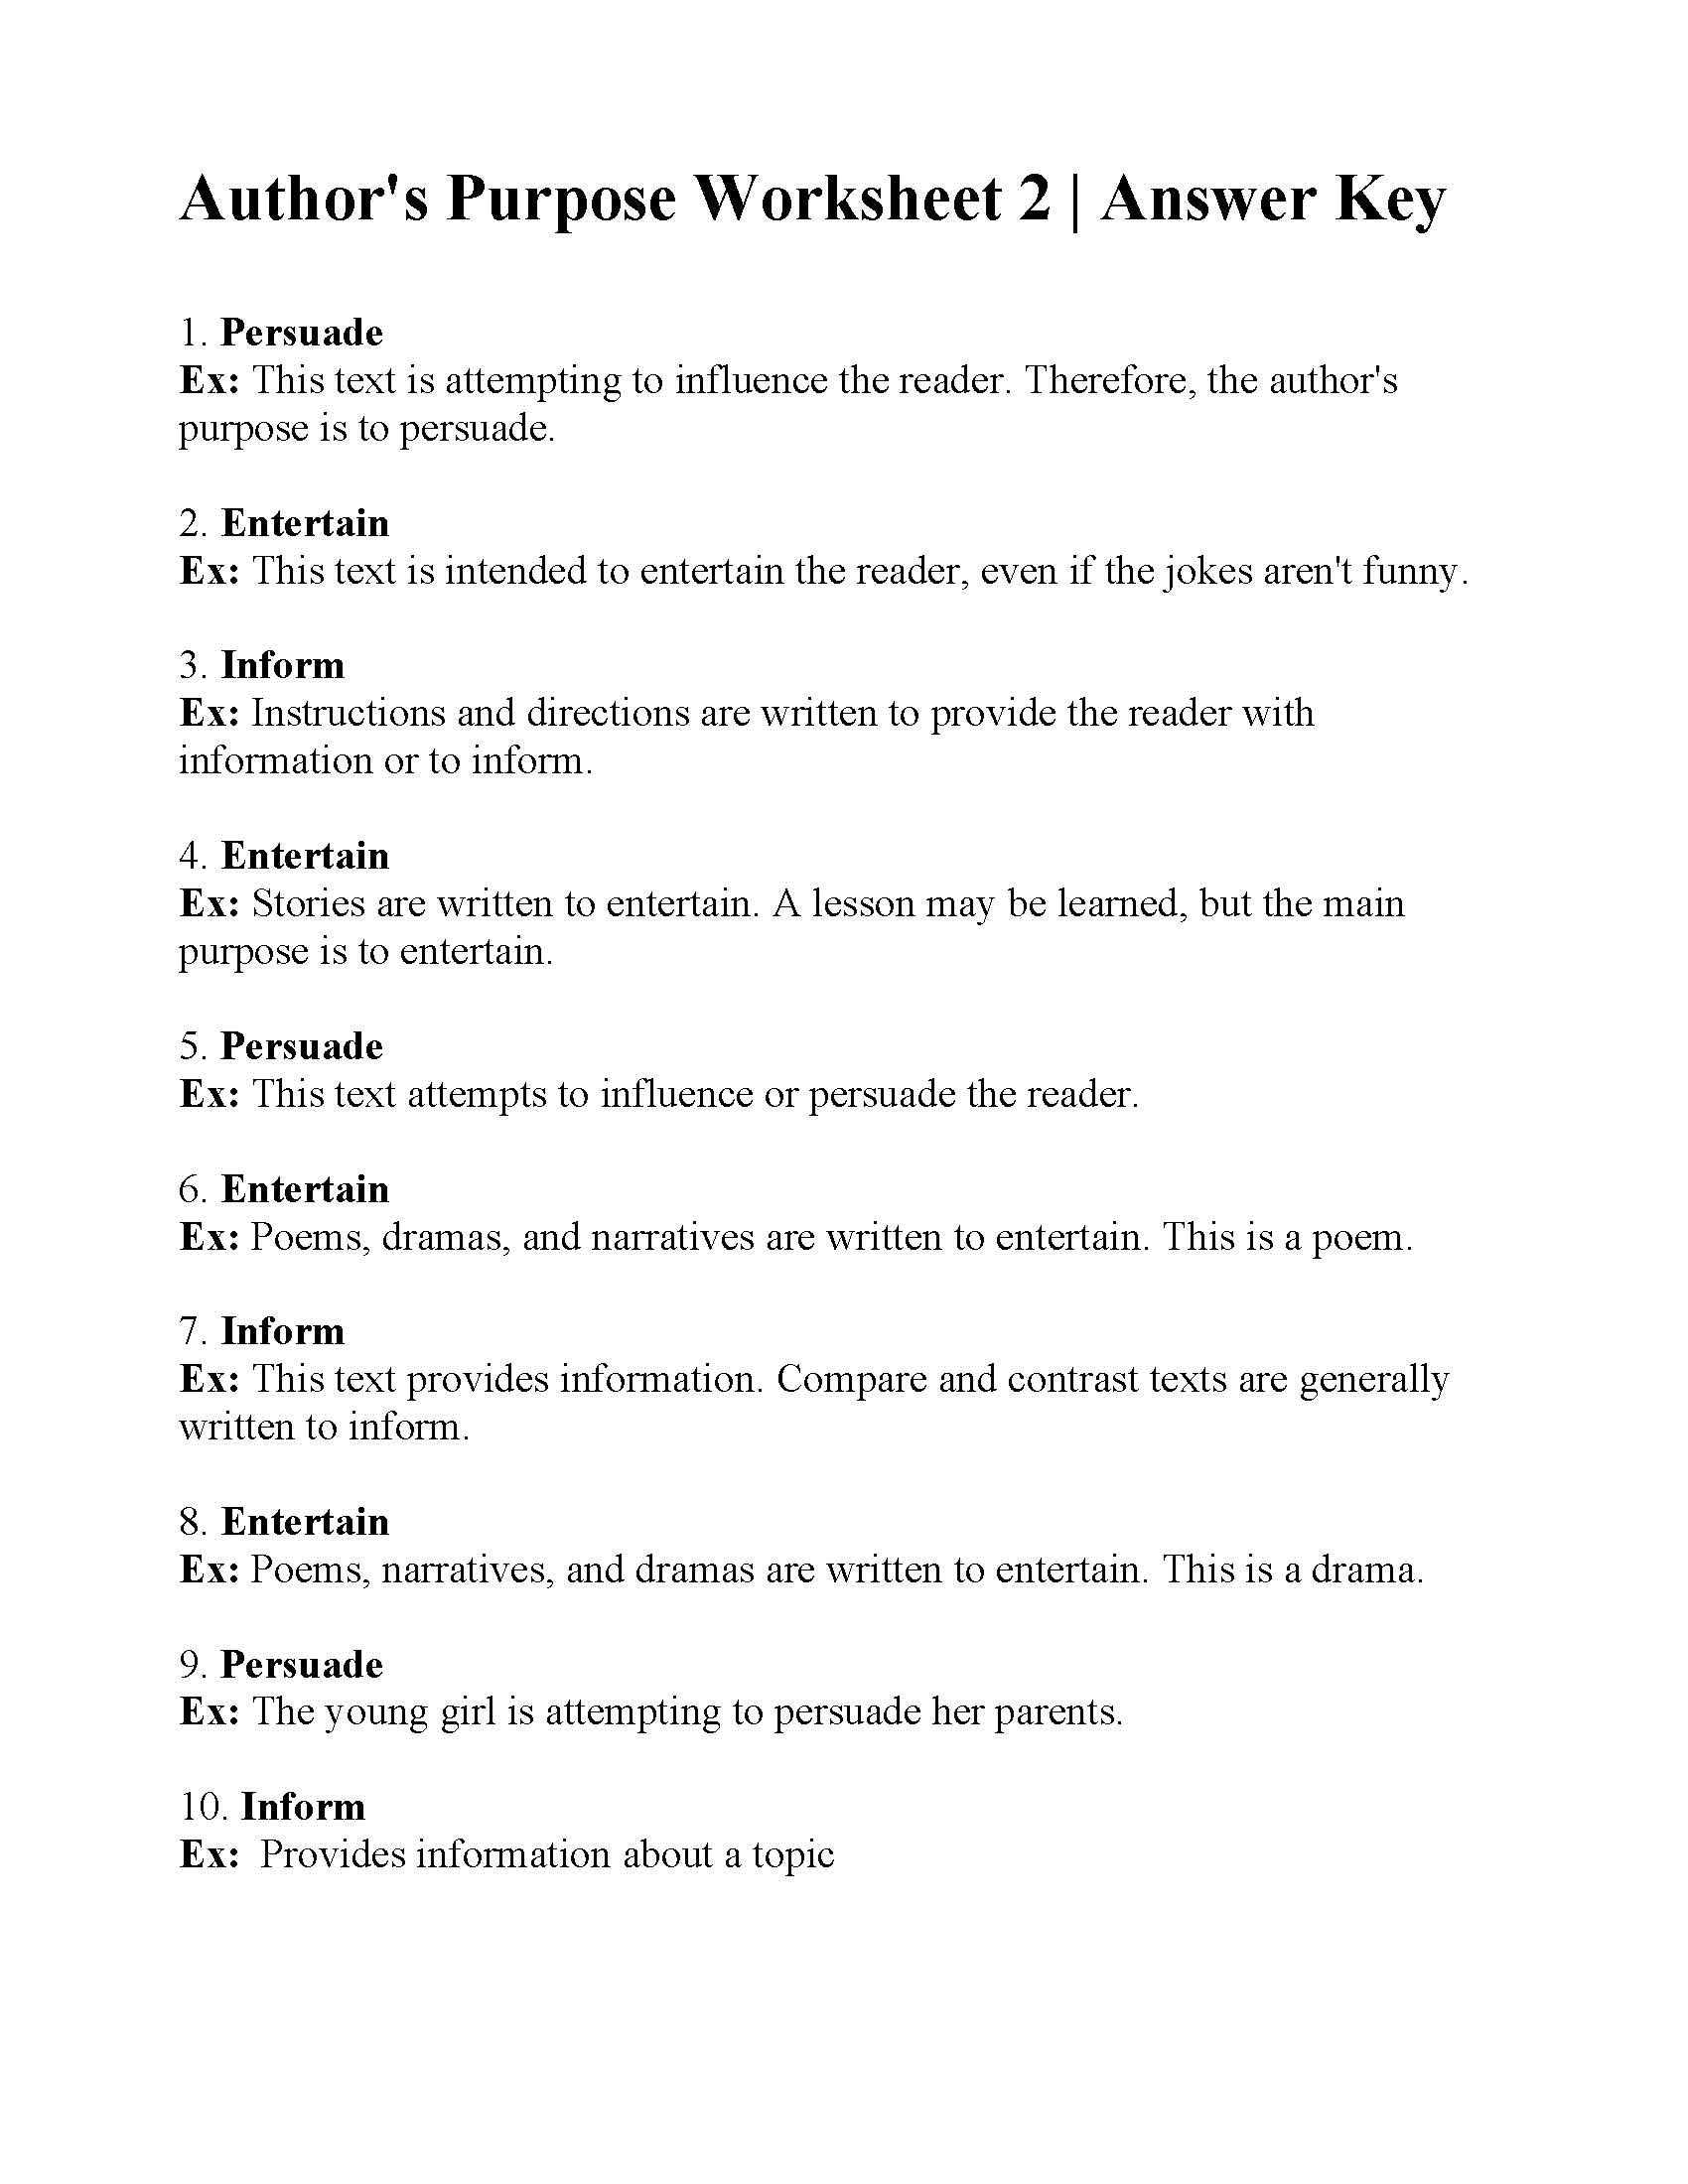 hight resolution of This is the answer key for the Author's Purpose Worksheet 2.   Author's  purpose worksheet